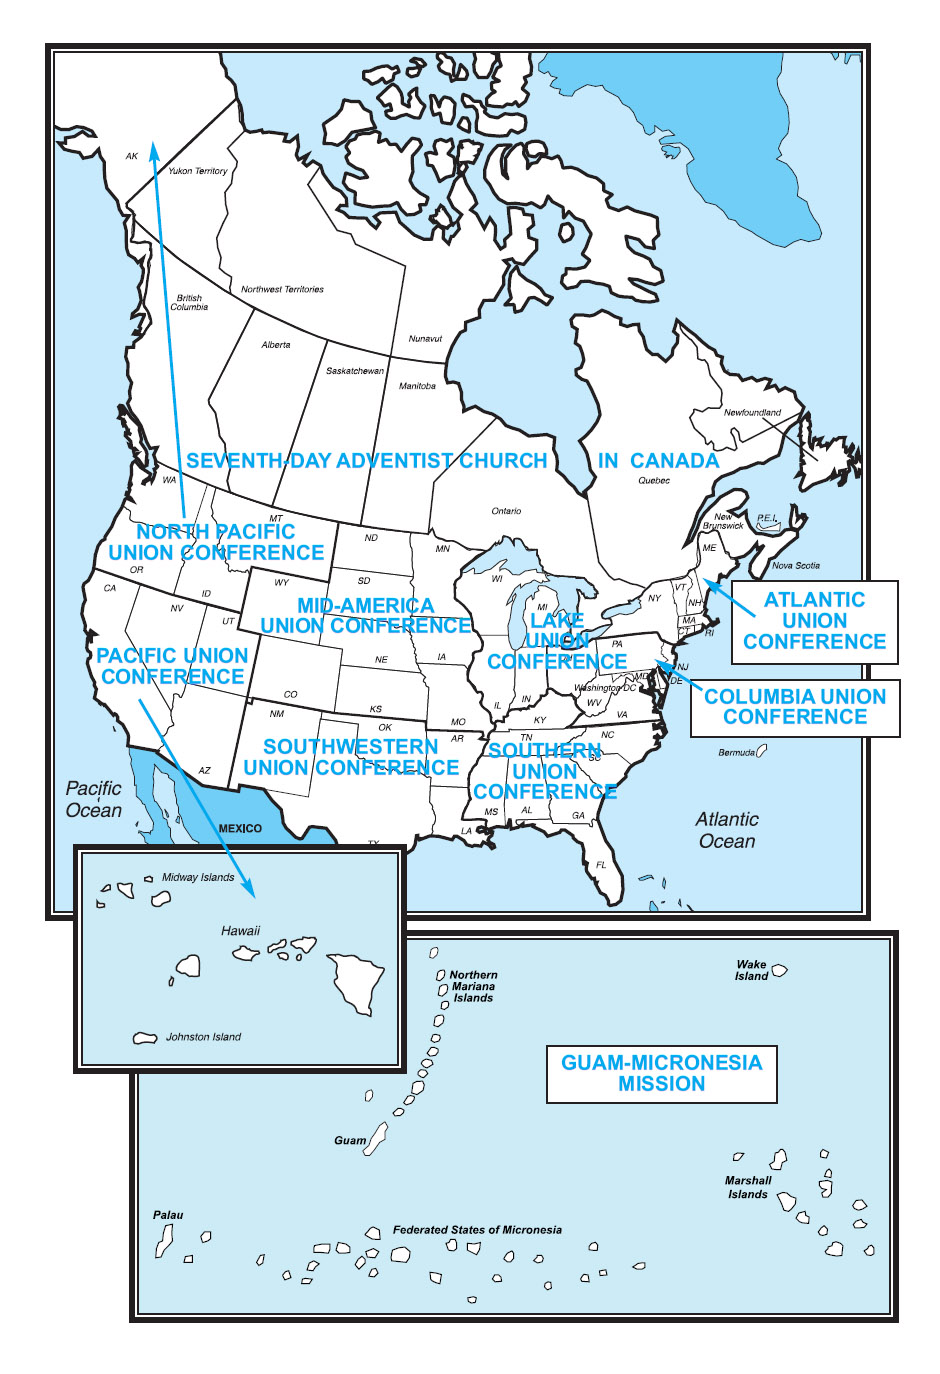 North American Division Map | North American Division of Seventh-day ...